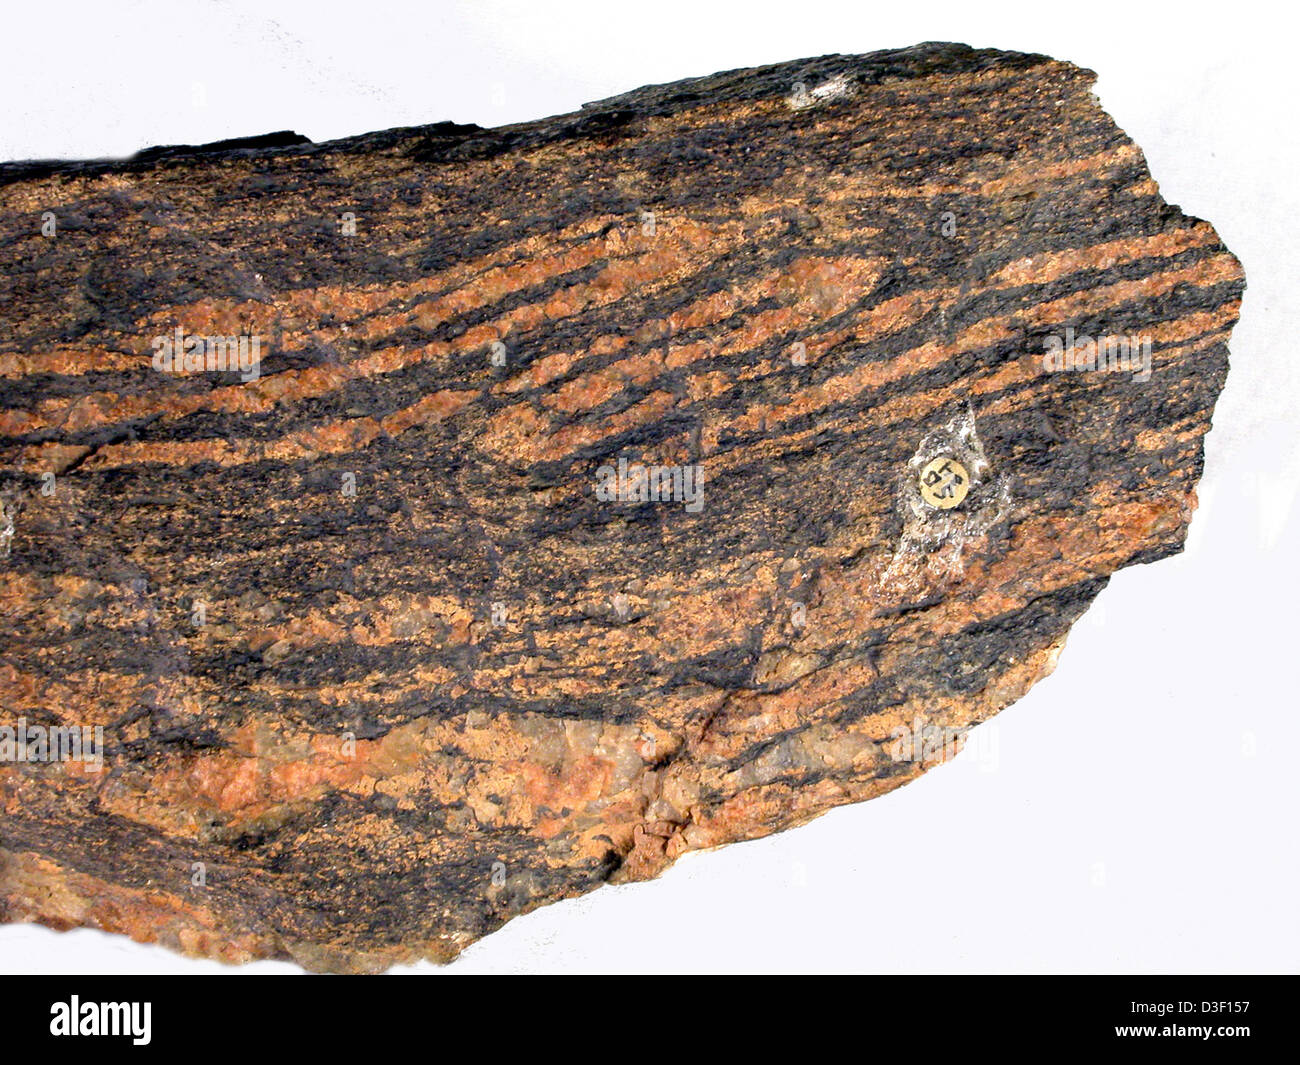 Grand Canyon Vishnu Schist Stock Photos Amp Grand Canyon